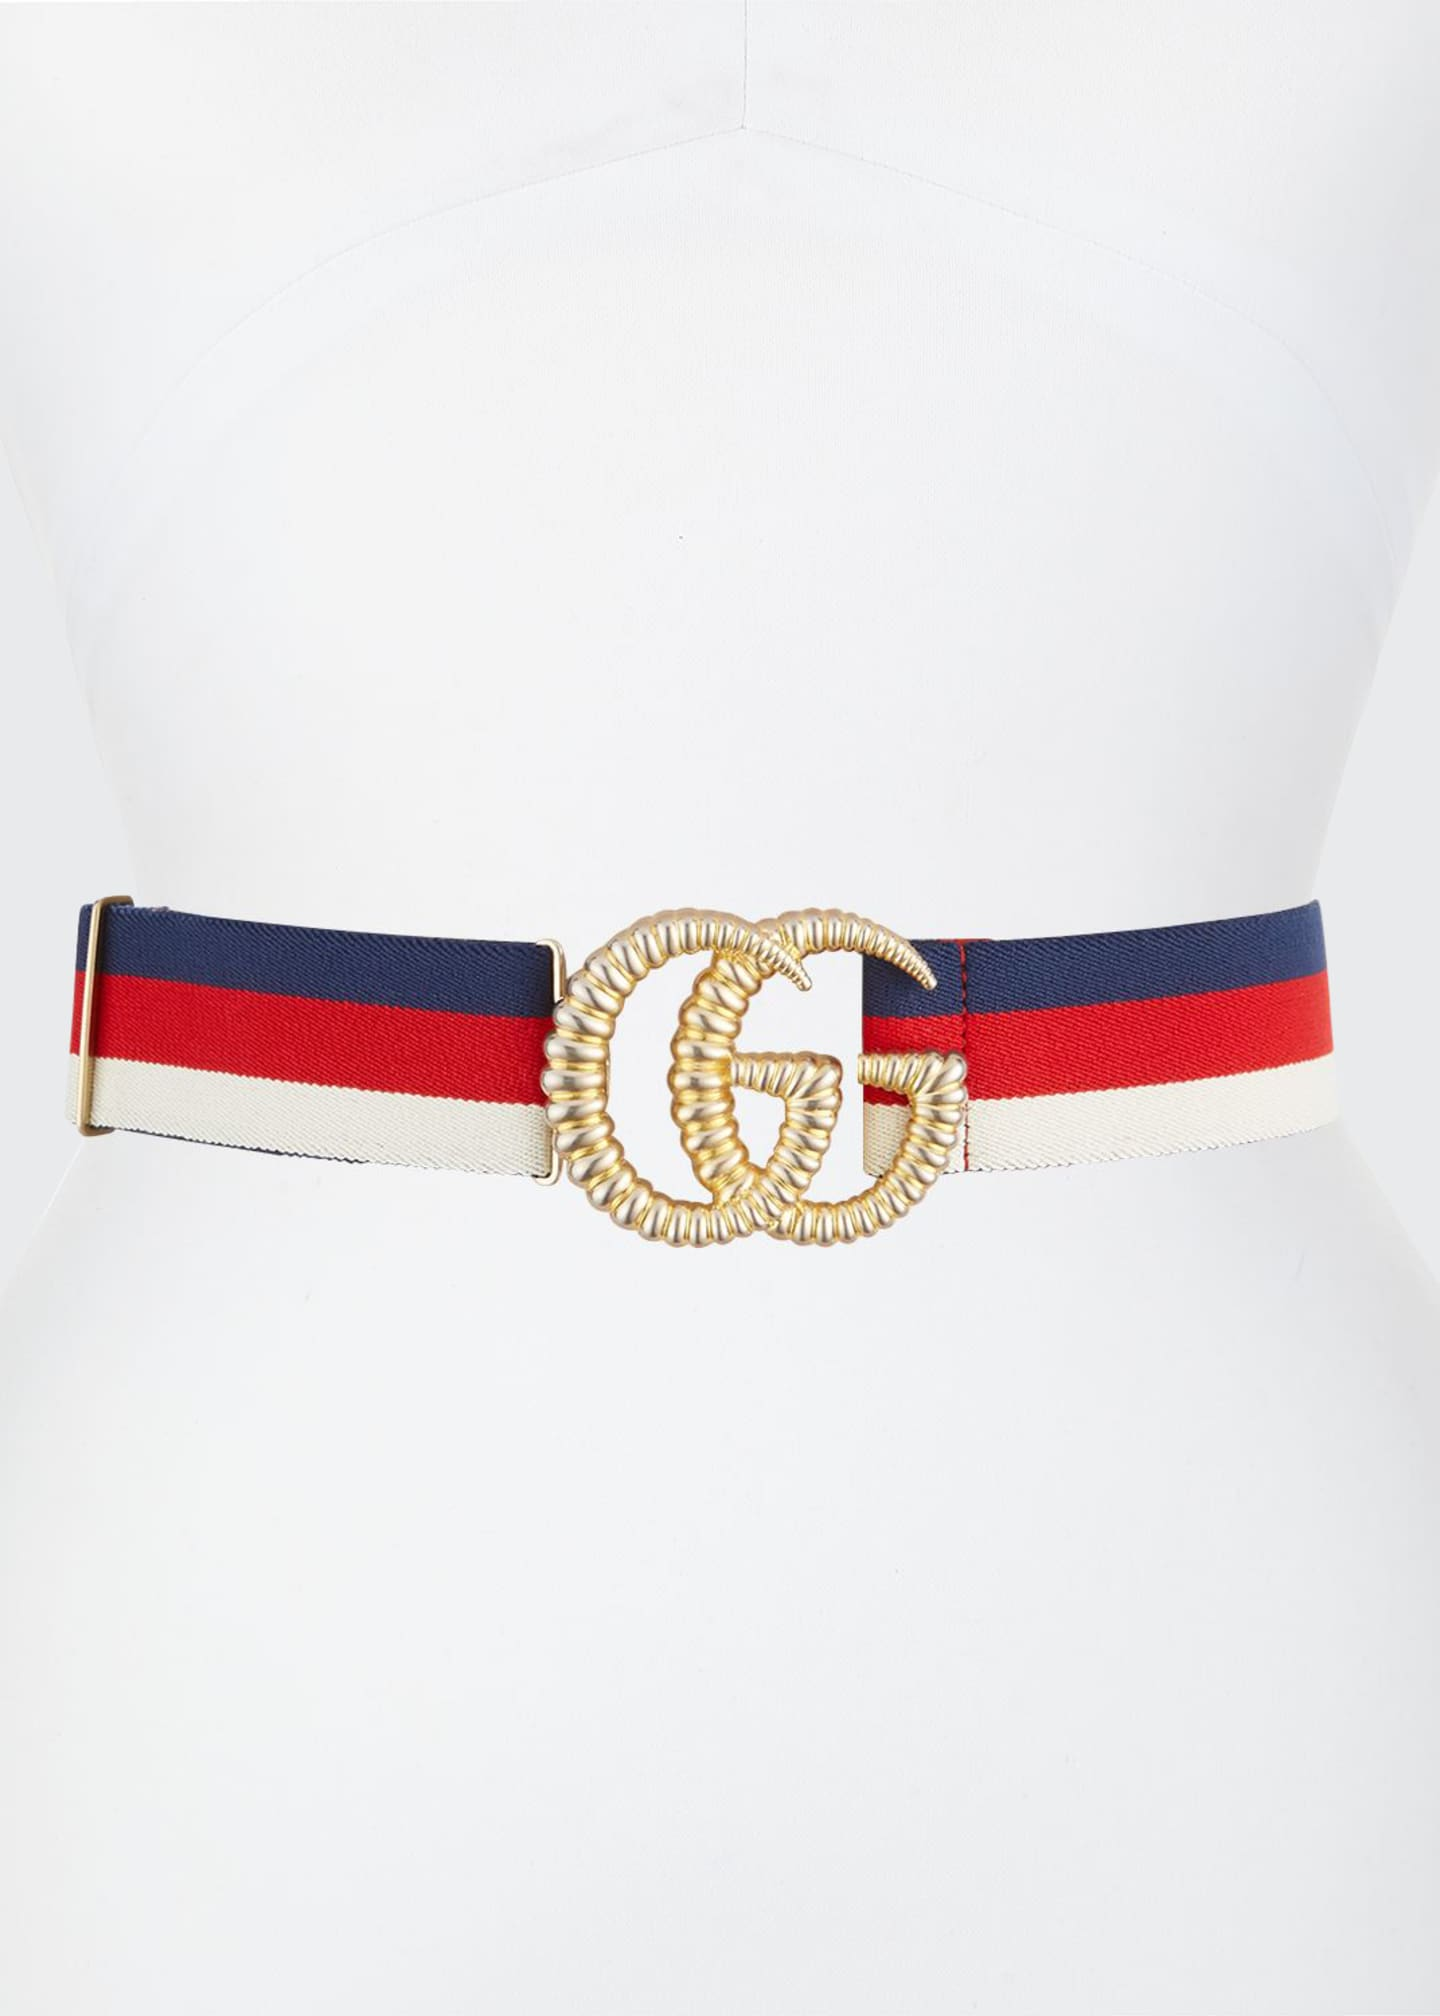 Image 1 of 1: Piccadilly Moon Elastic Web Belt w/ Textured GG Buckle